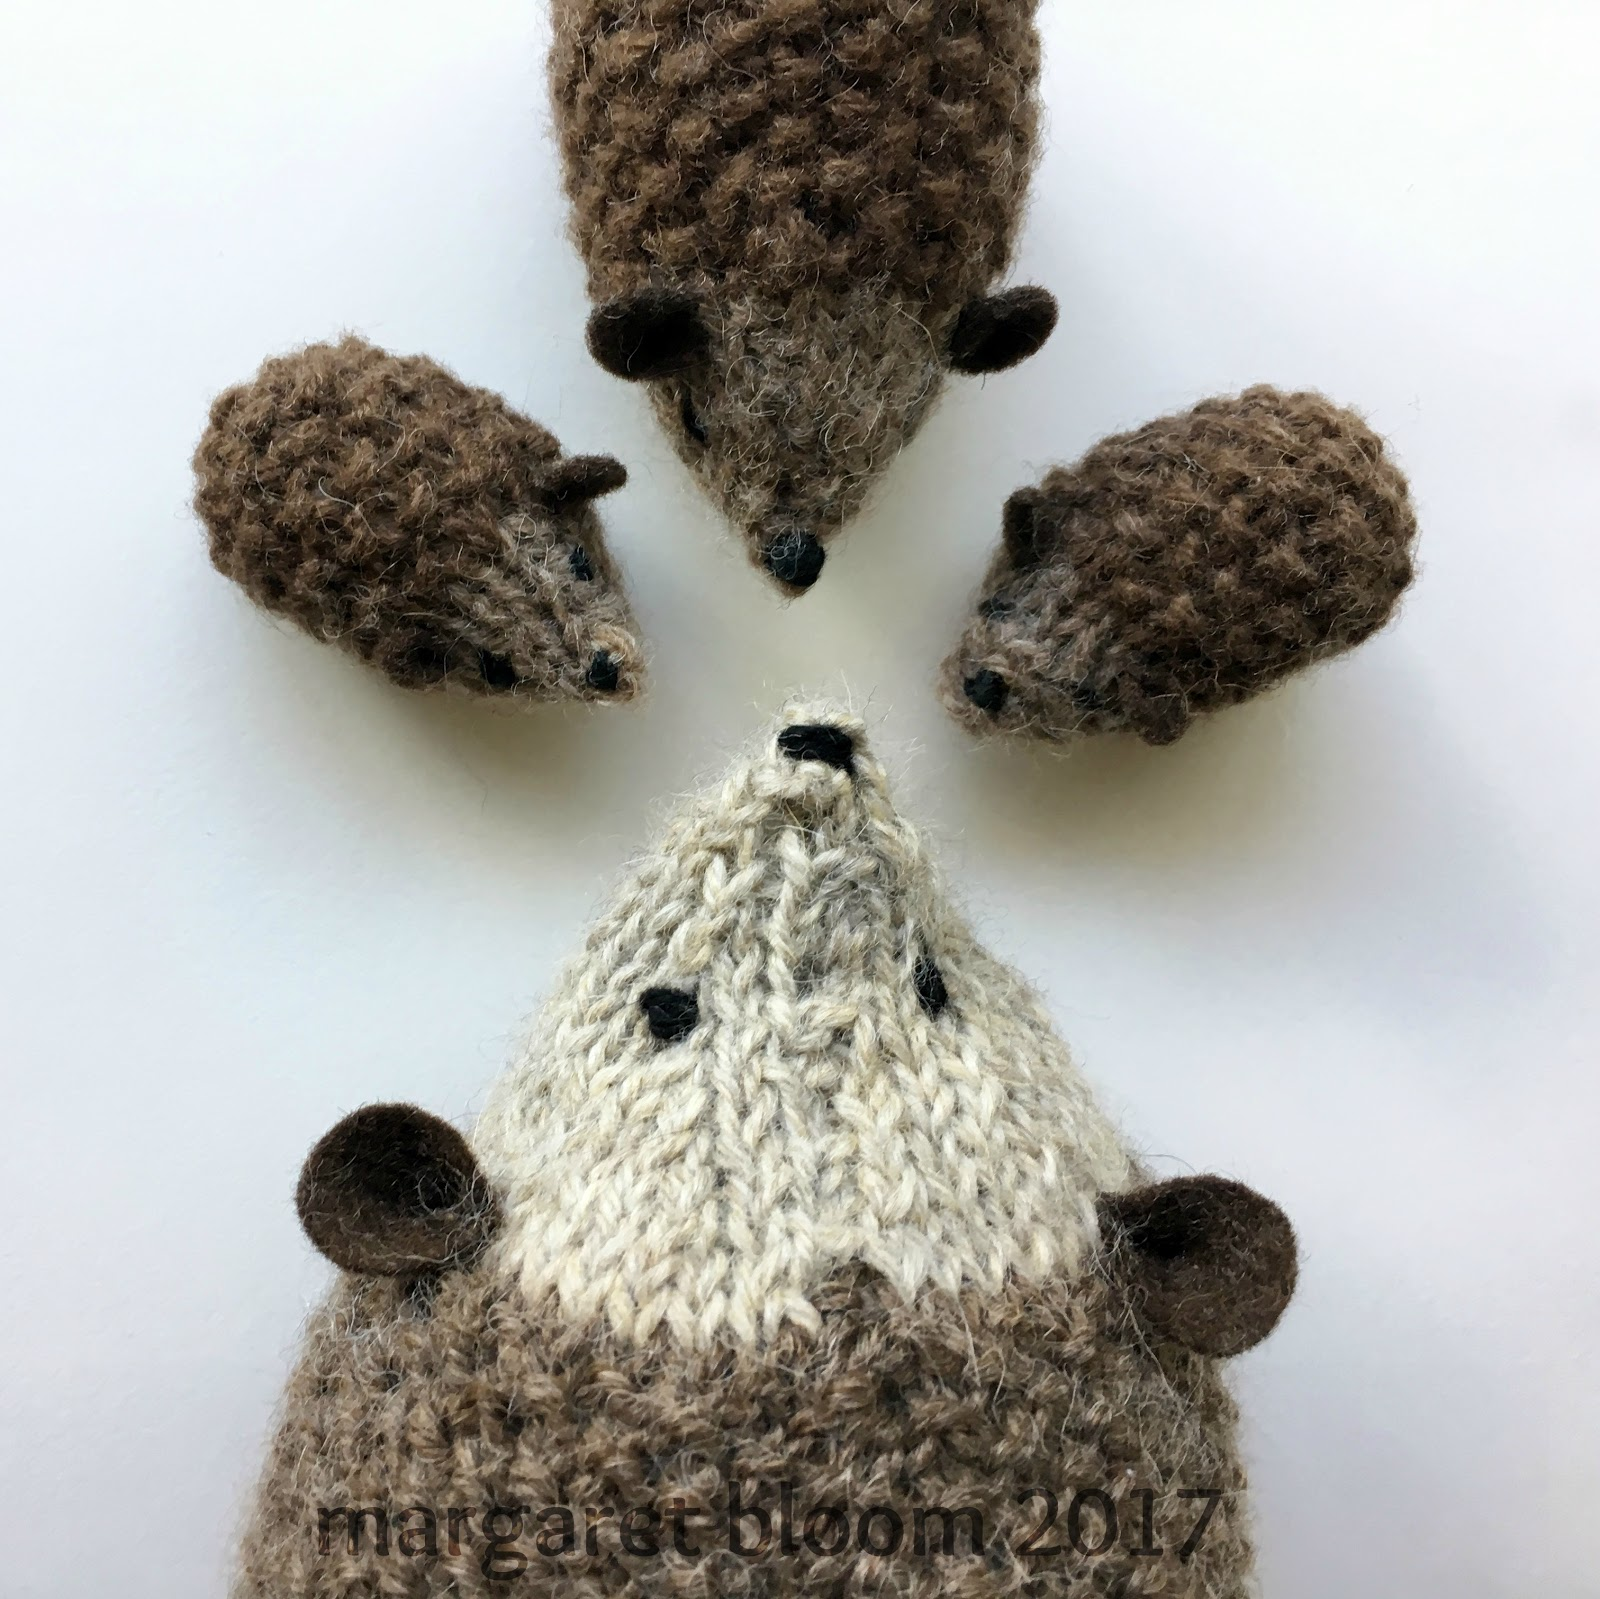 Knitting Pattern For Hedgehog : we bloom here: hans my hedgehog :: new enlarged knitting ...